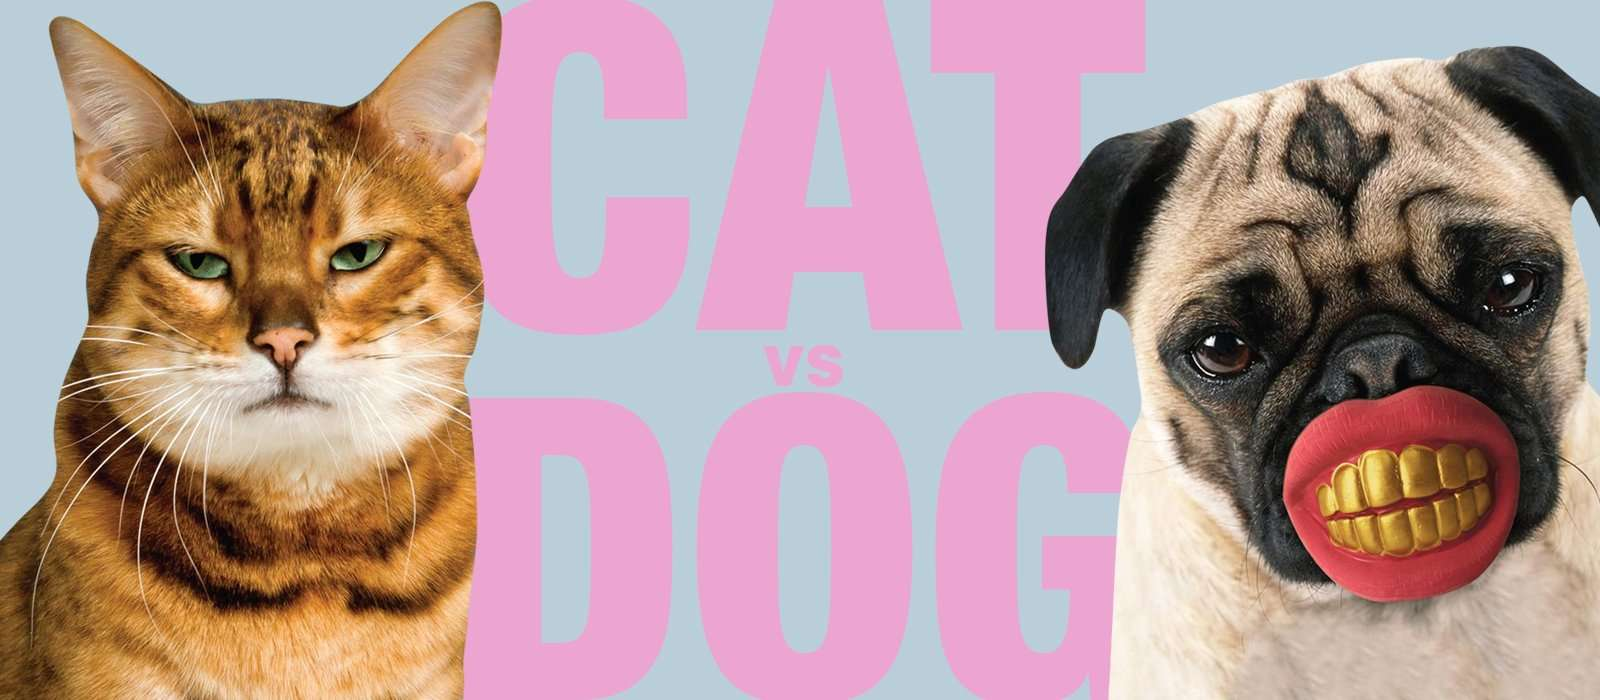 Cats Vs Dogs: Which is a better pet for you?